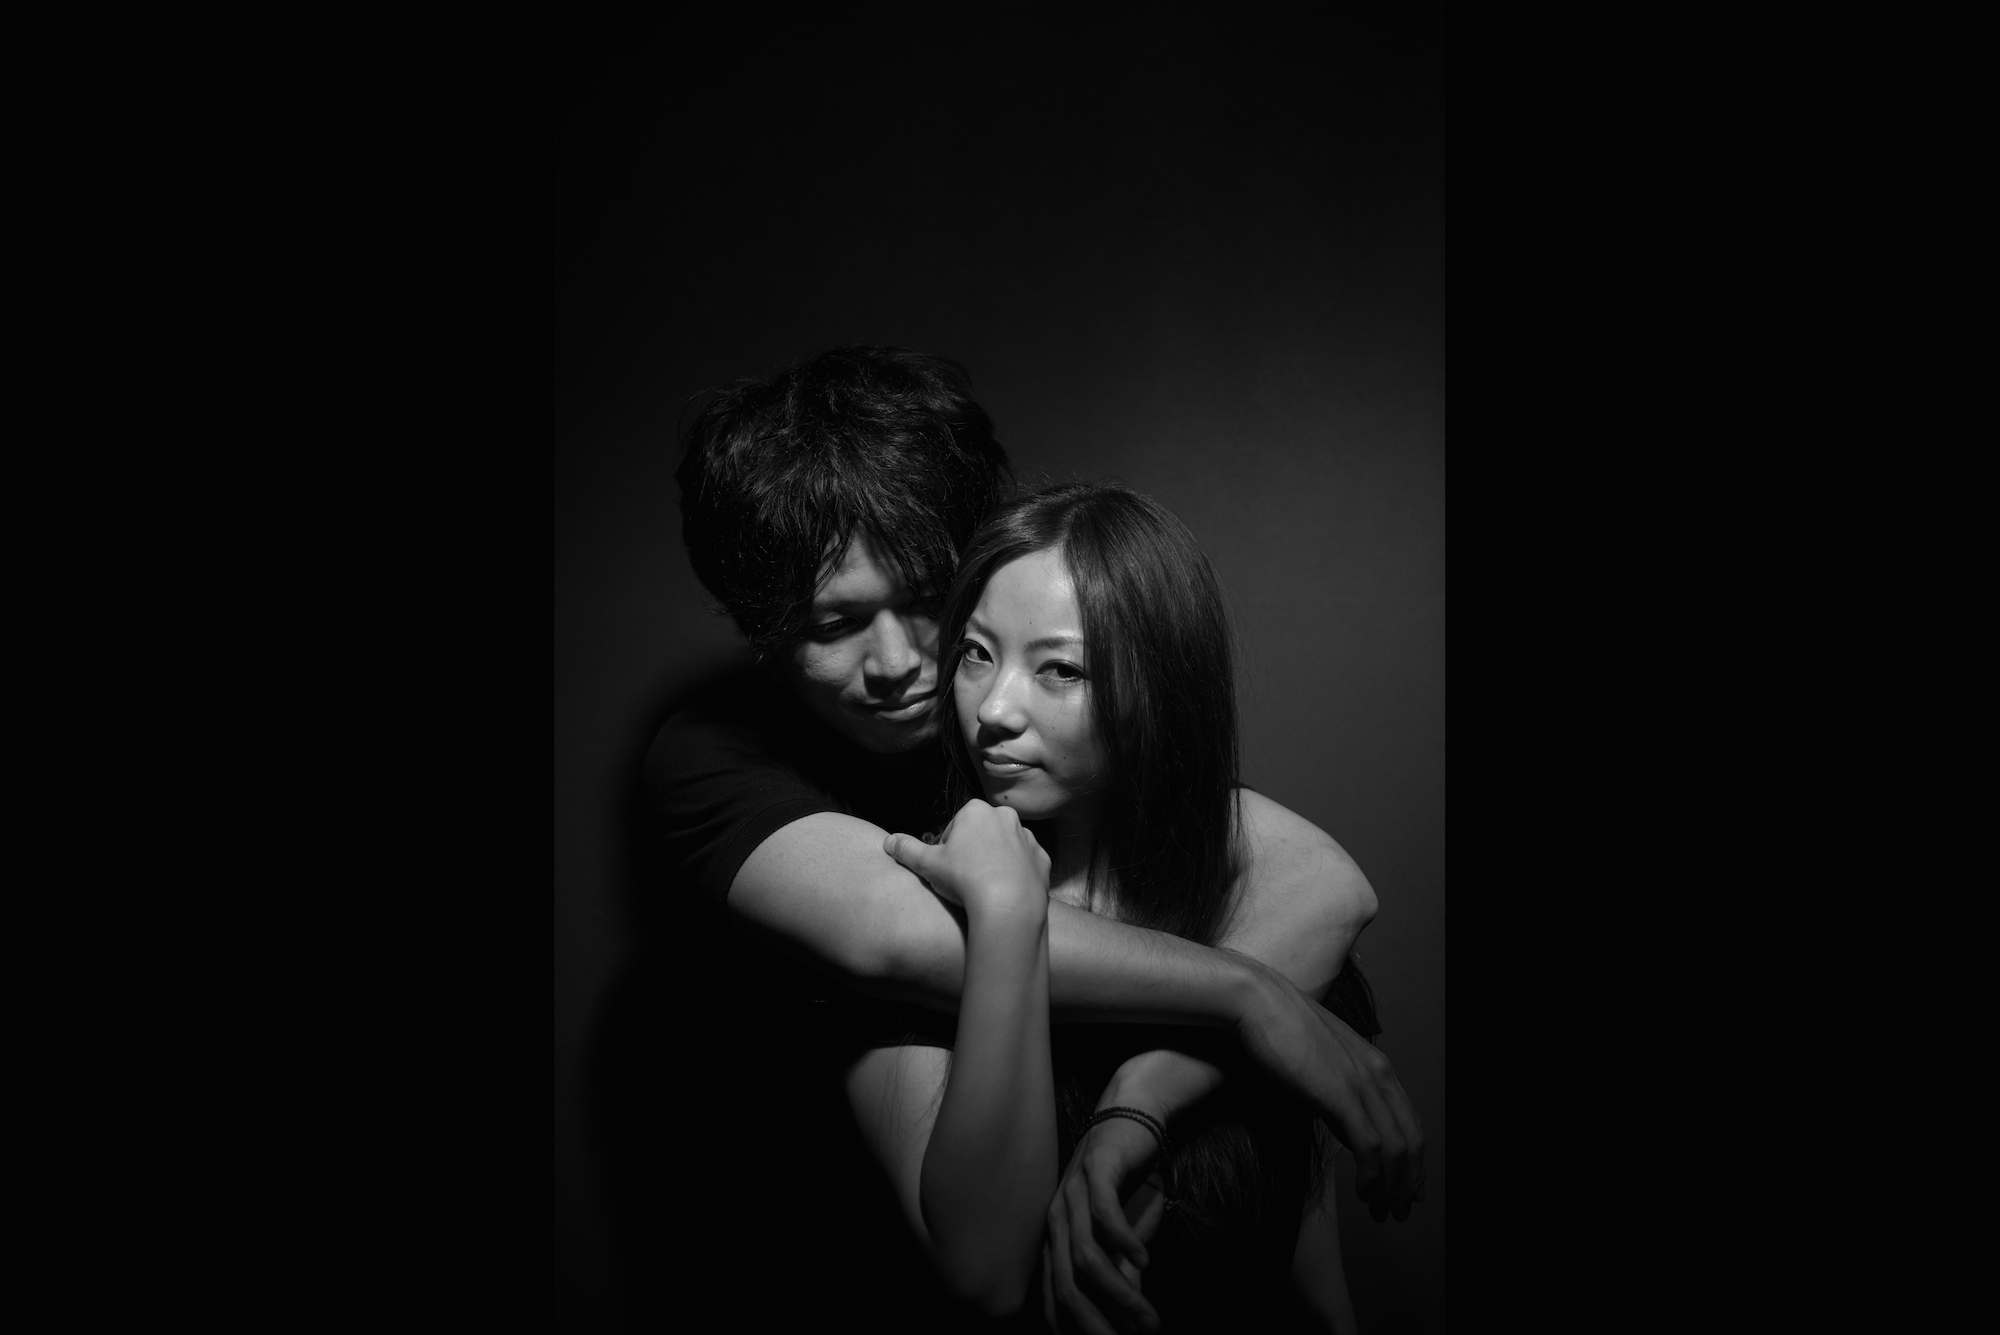 engagement photo0019のコピー